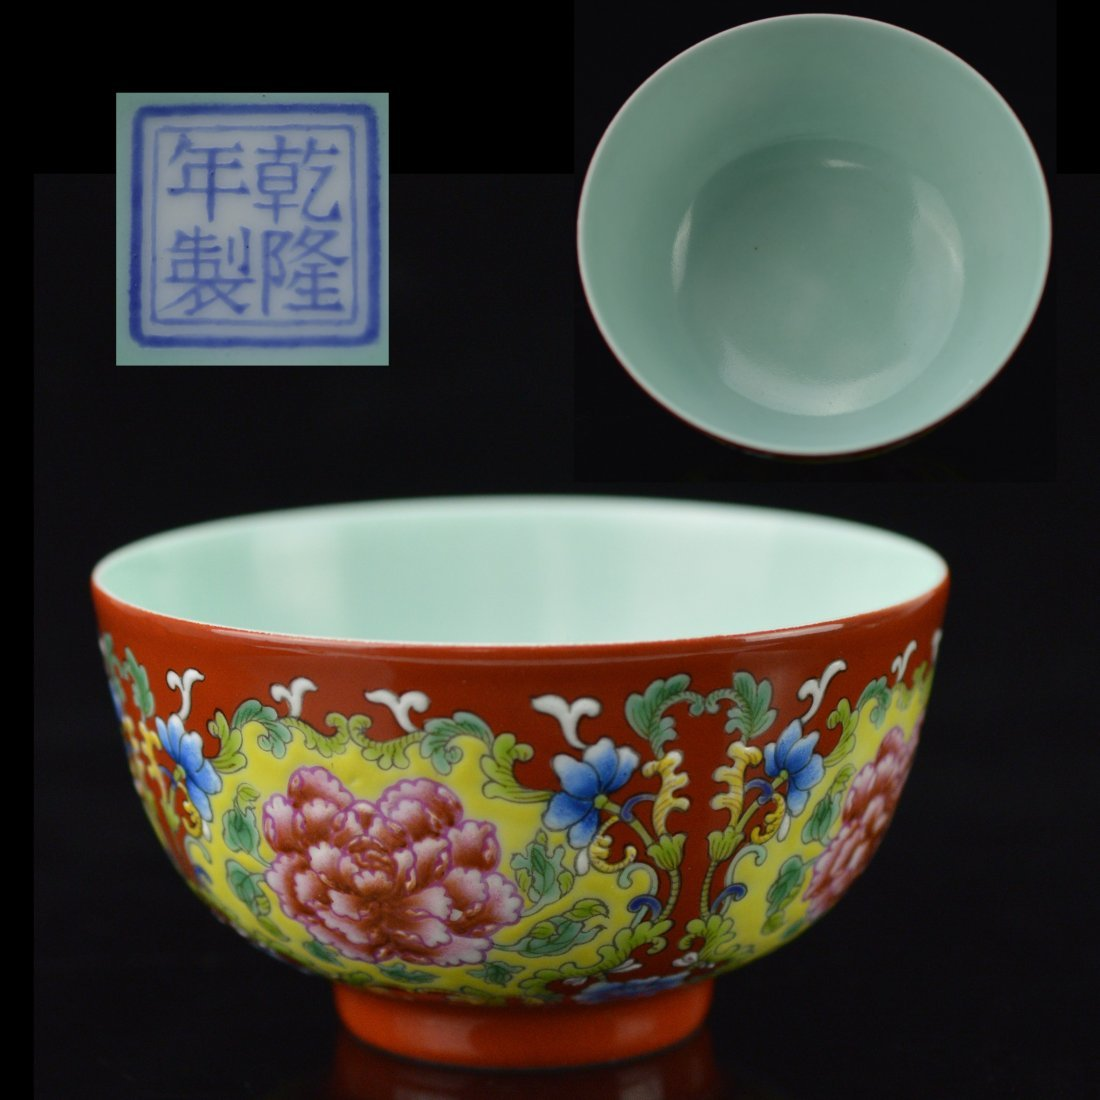 Enamel and Glaze Porcelain Bowl